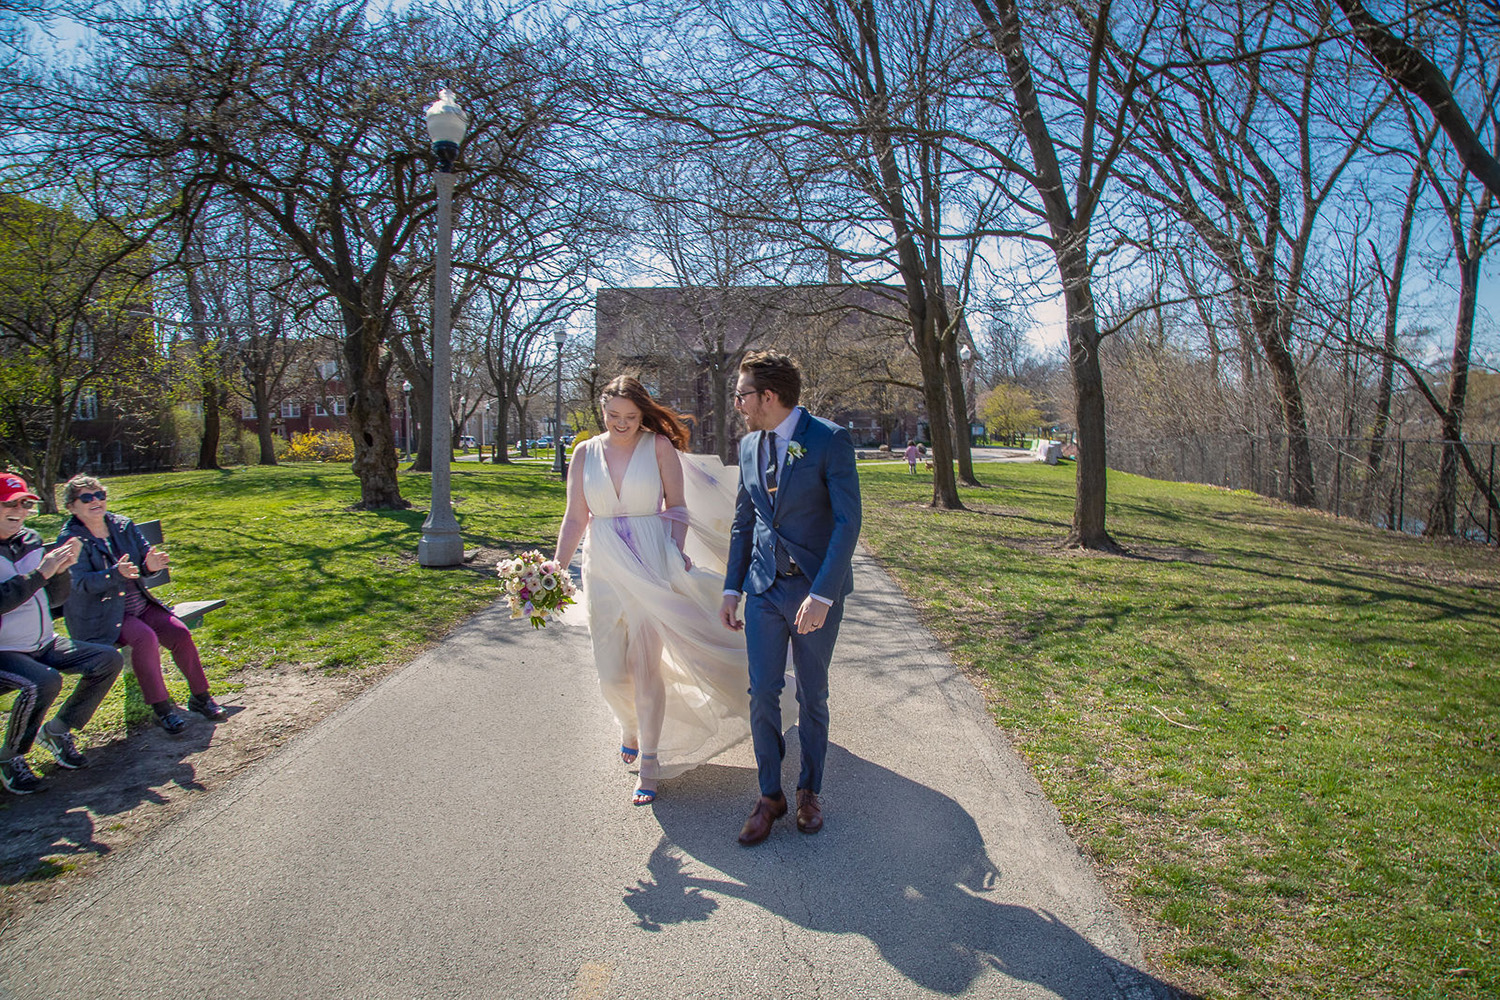 Bride and Groom walking through park with neighbors clapping